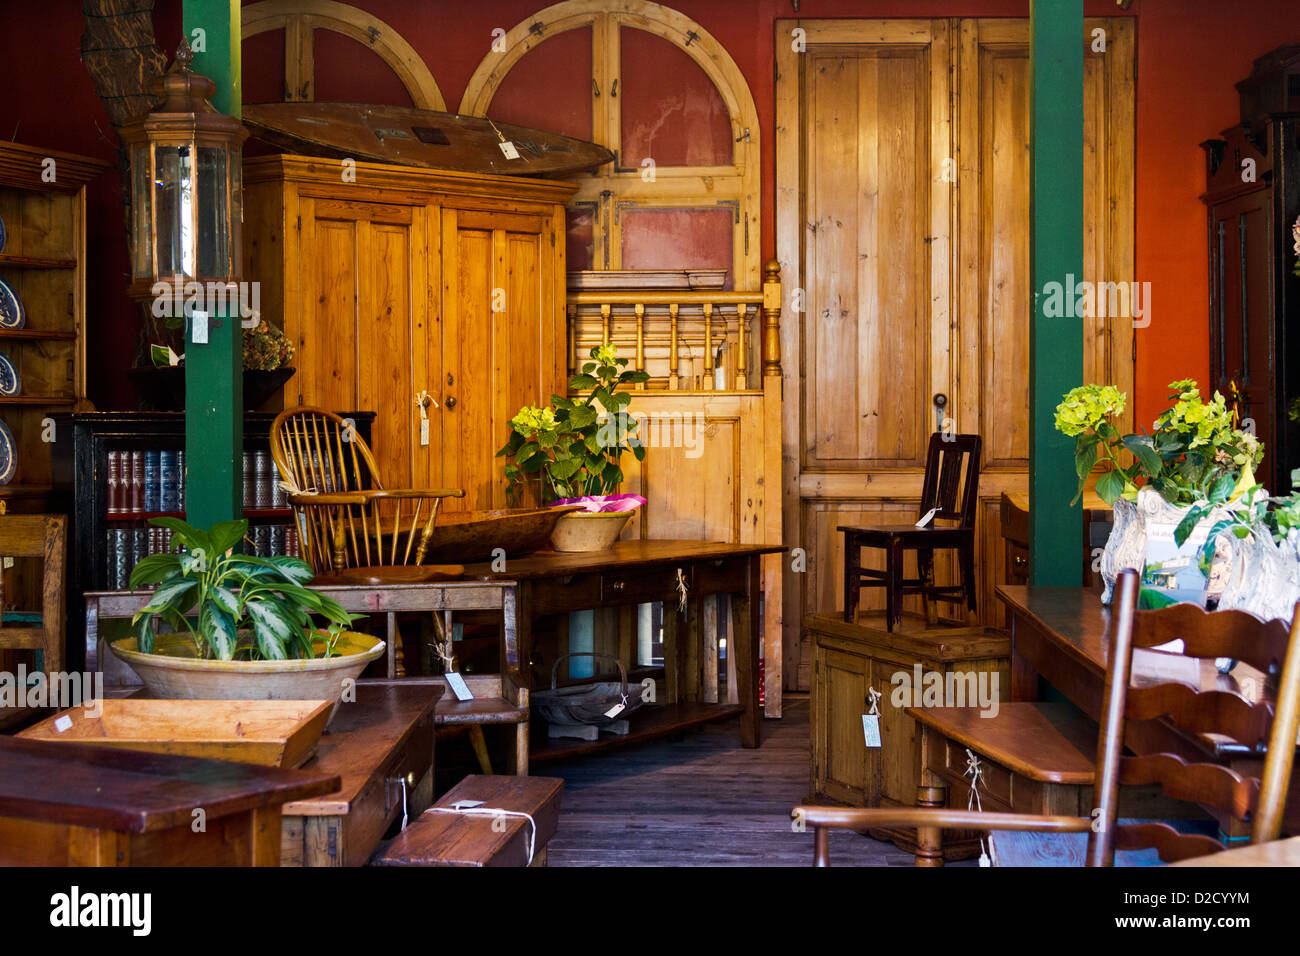 Interior view of an antique furniture store in Summerland, near Santa Barbara,  California - Stock Image